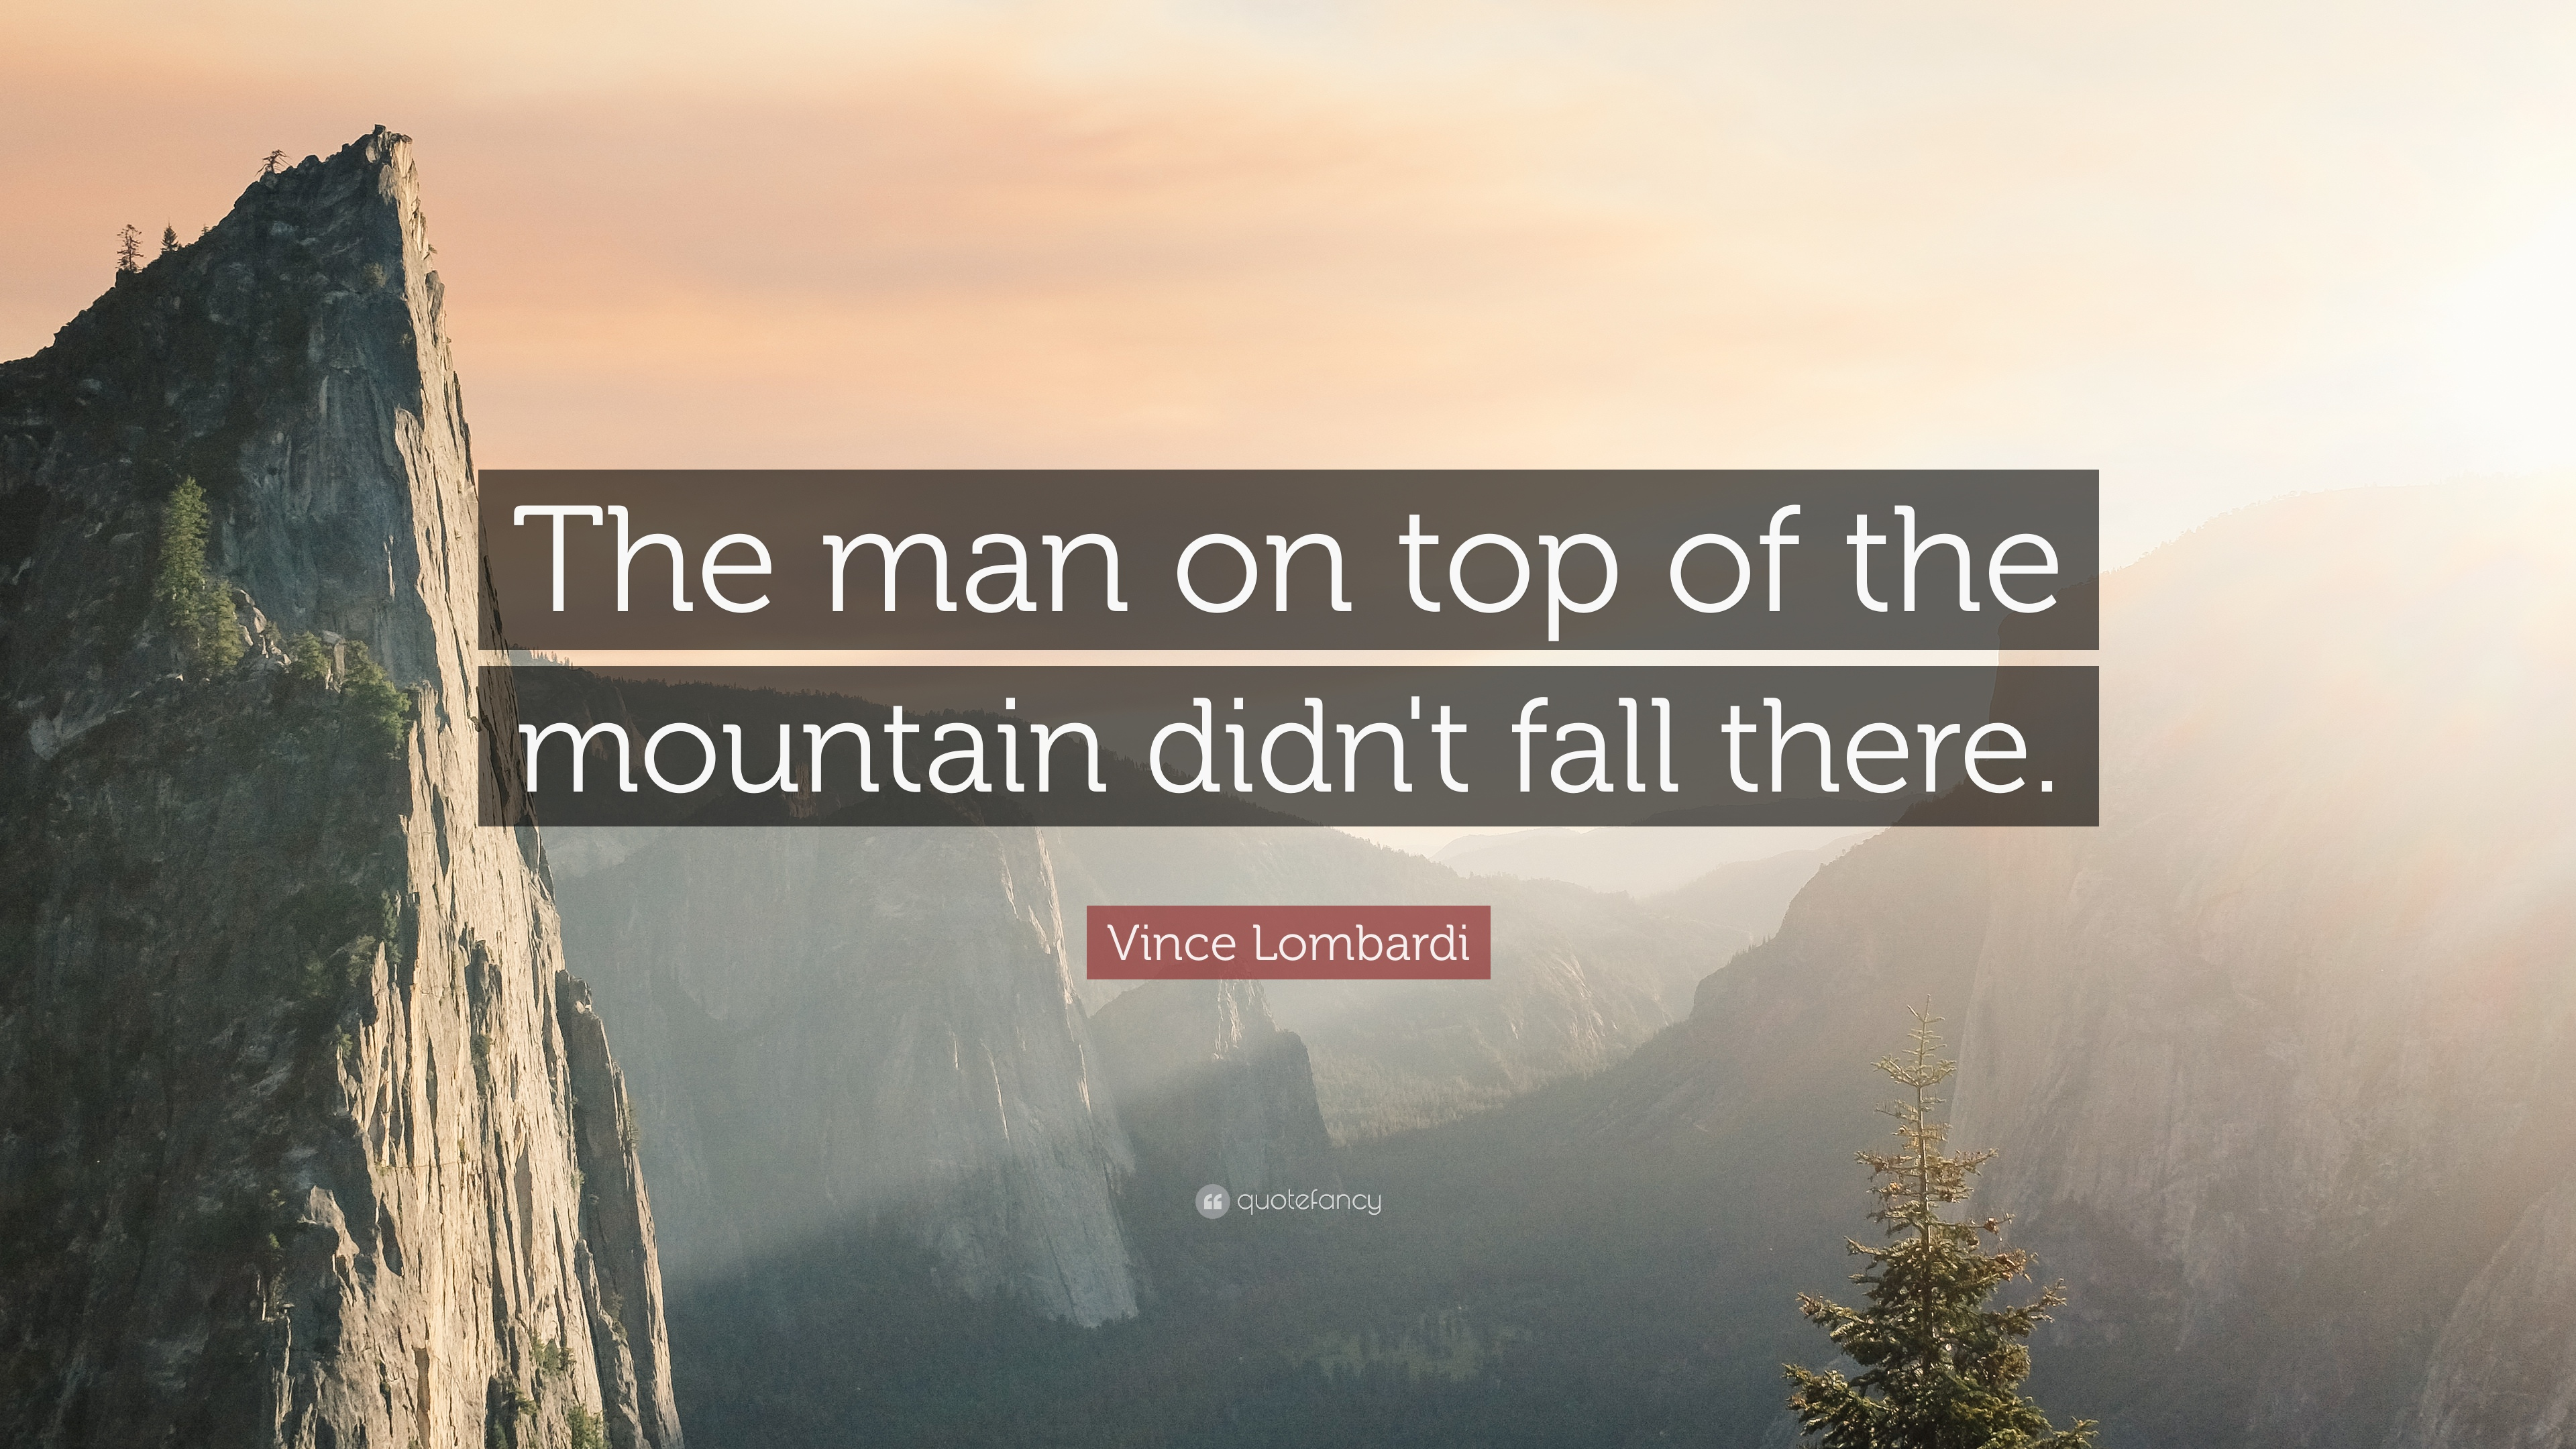 Quotefancy-7970-3840x2160